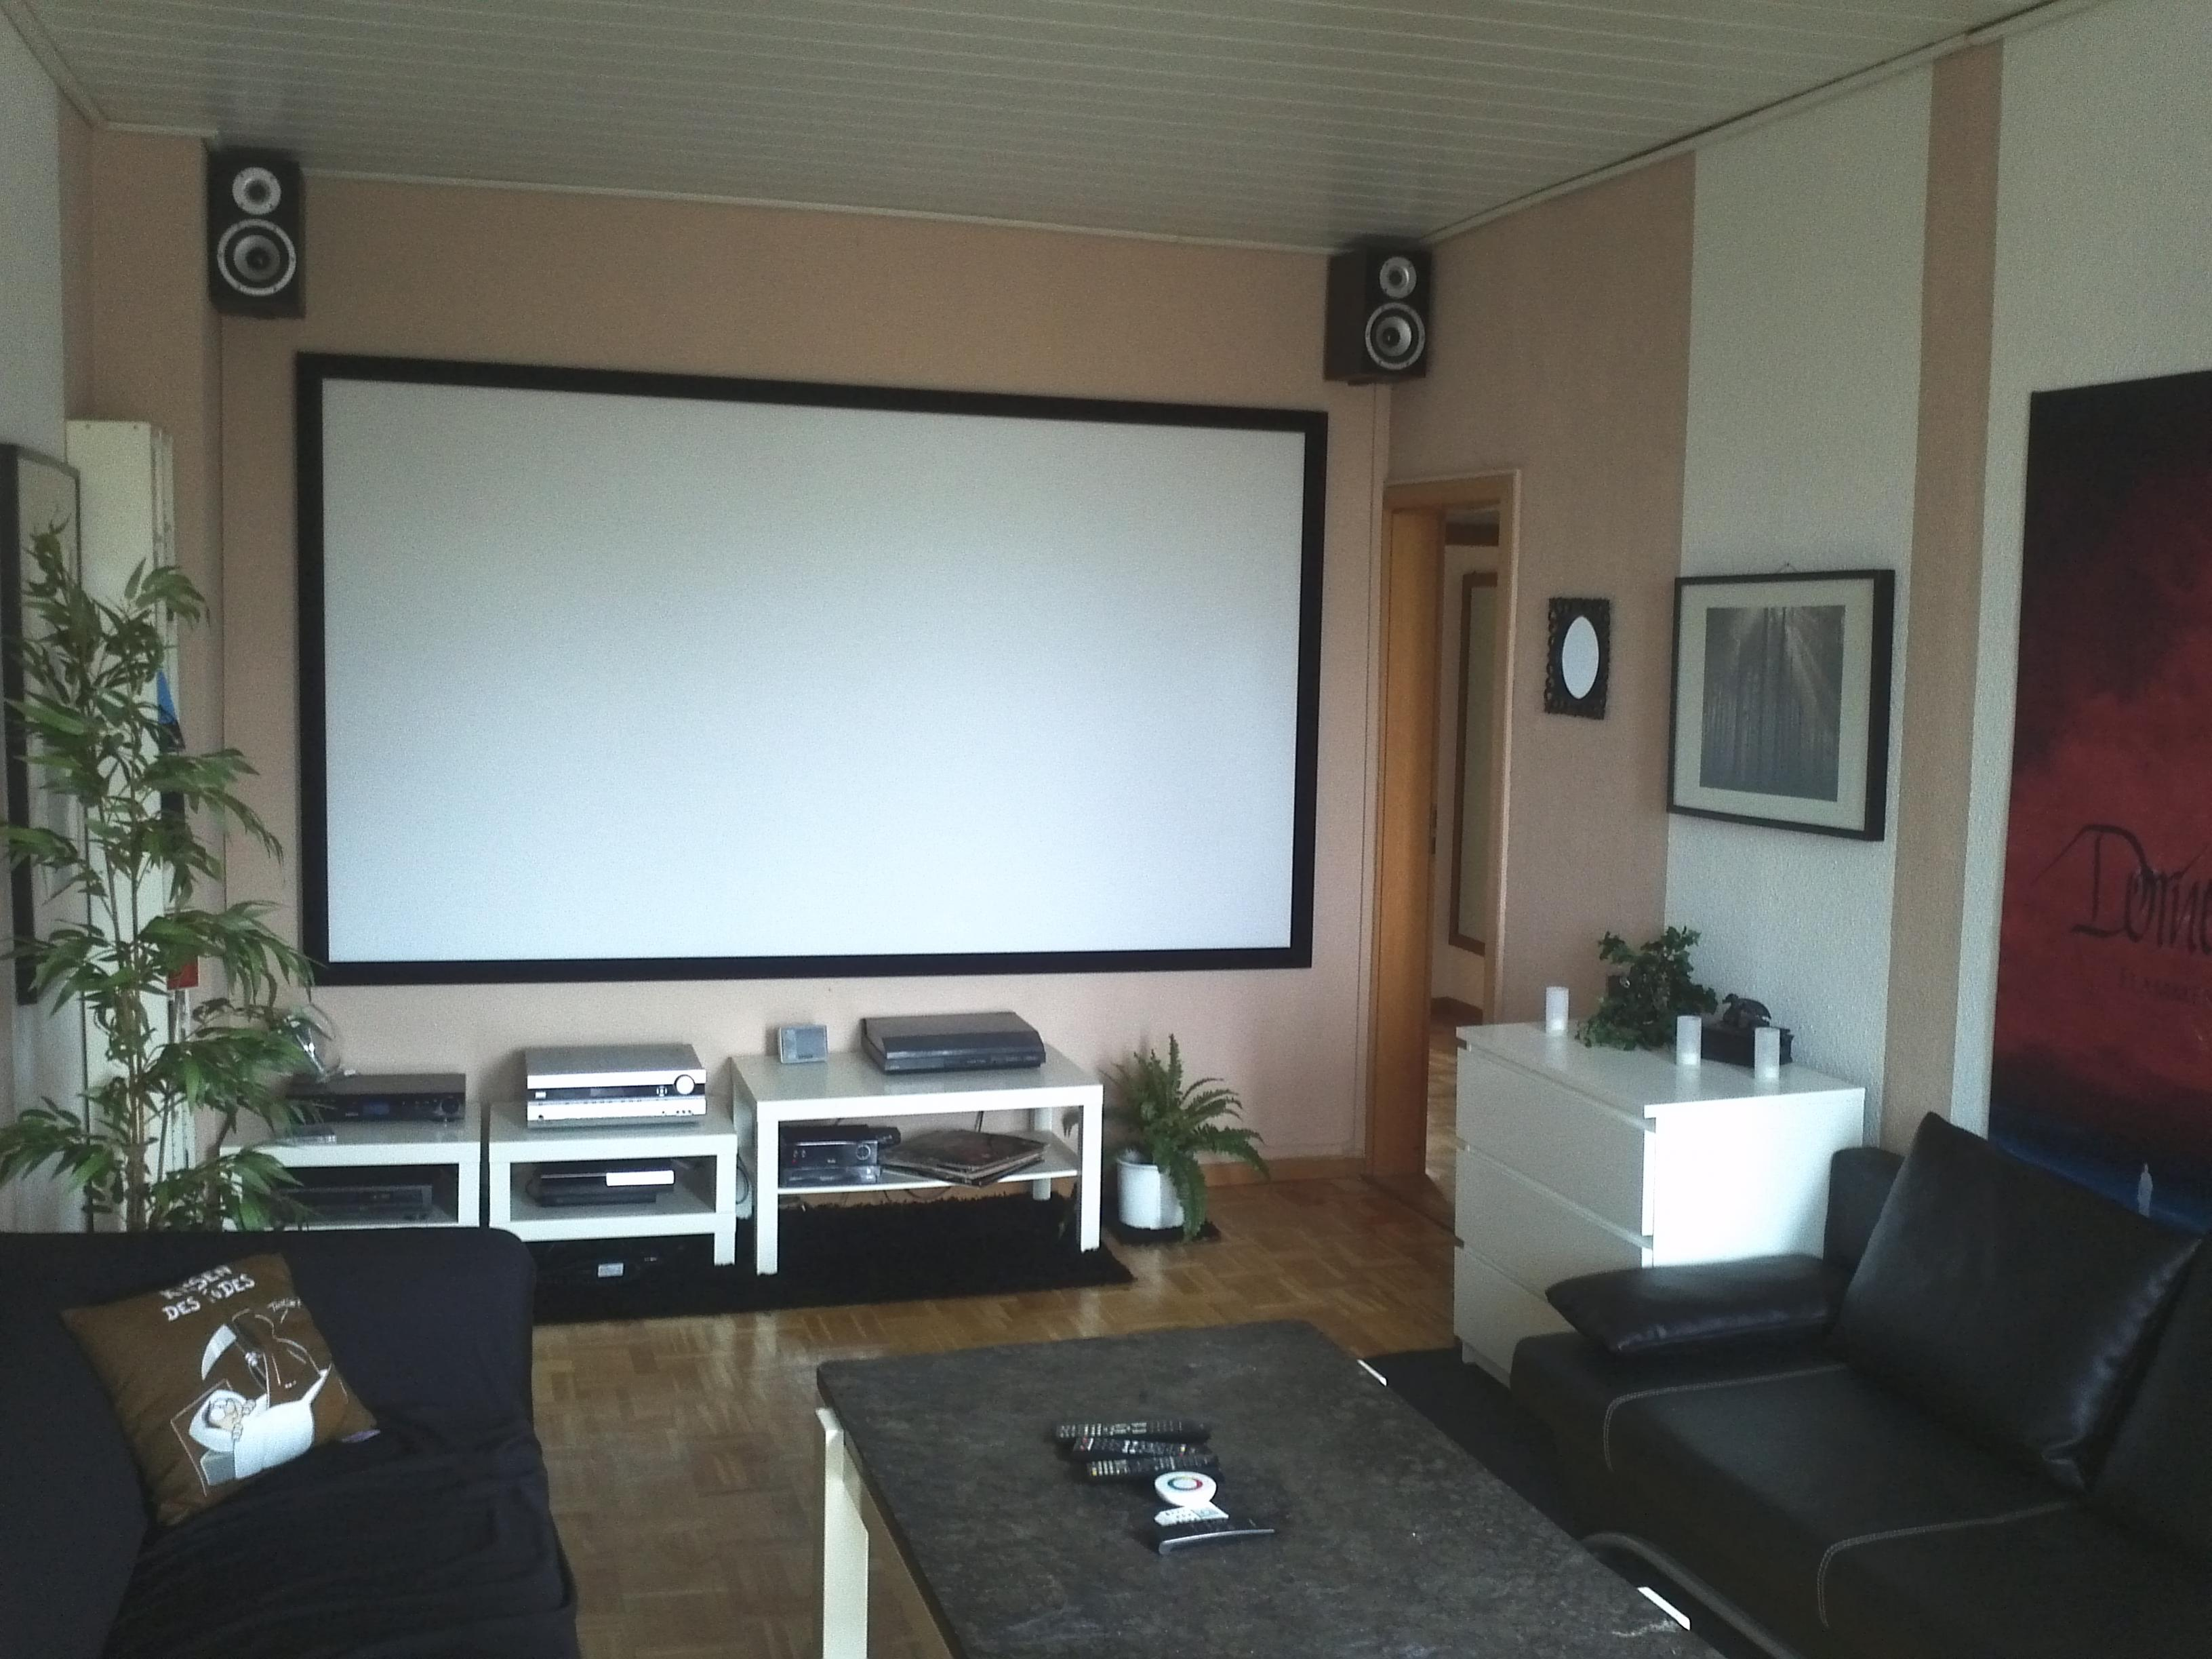 der heimkino bilderthread seite 15. Black Bedroom Furniture Sets. Home Design Ideas